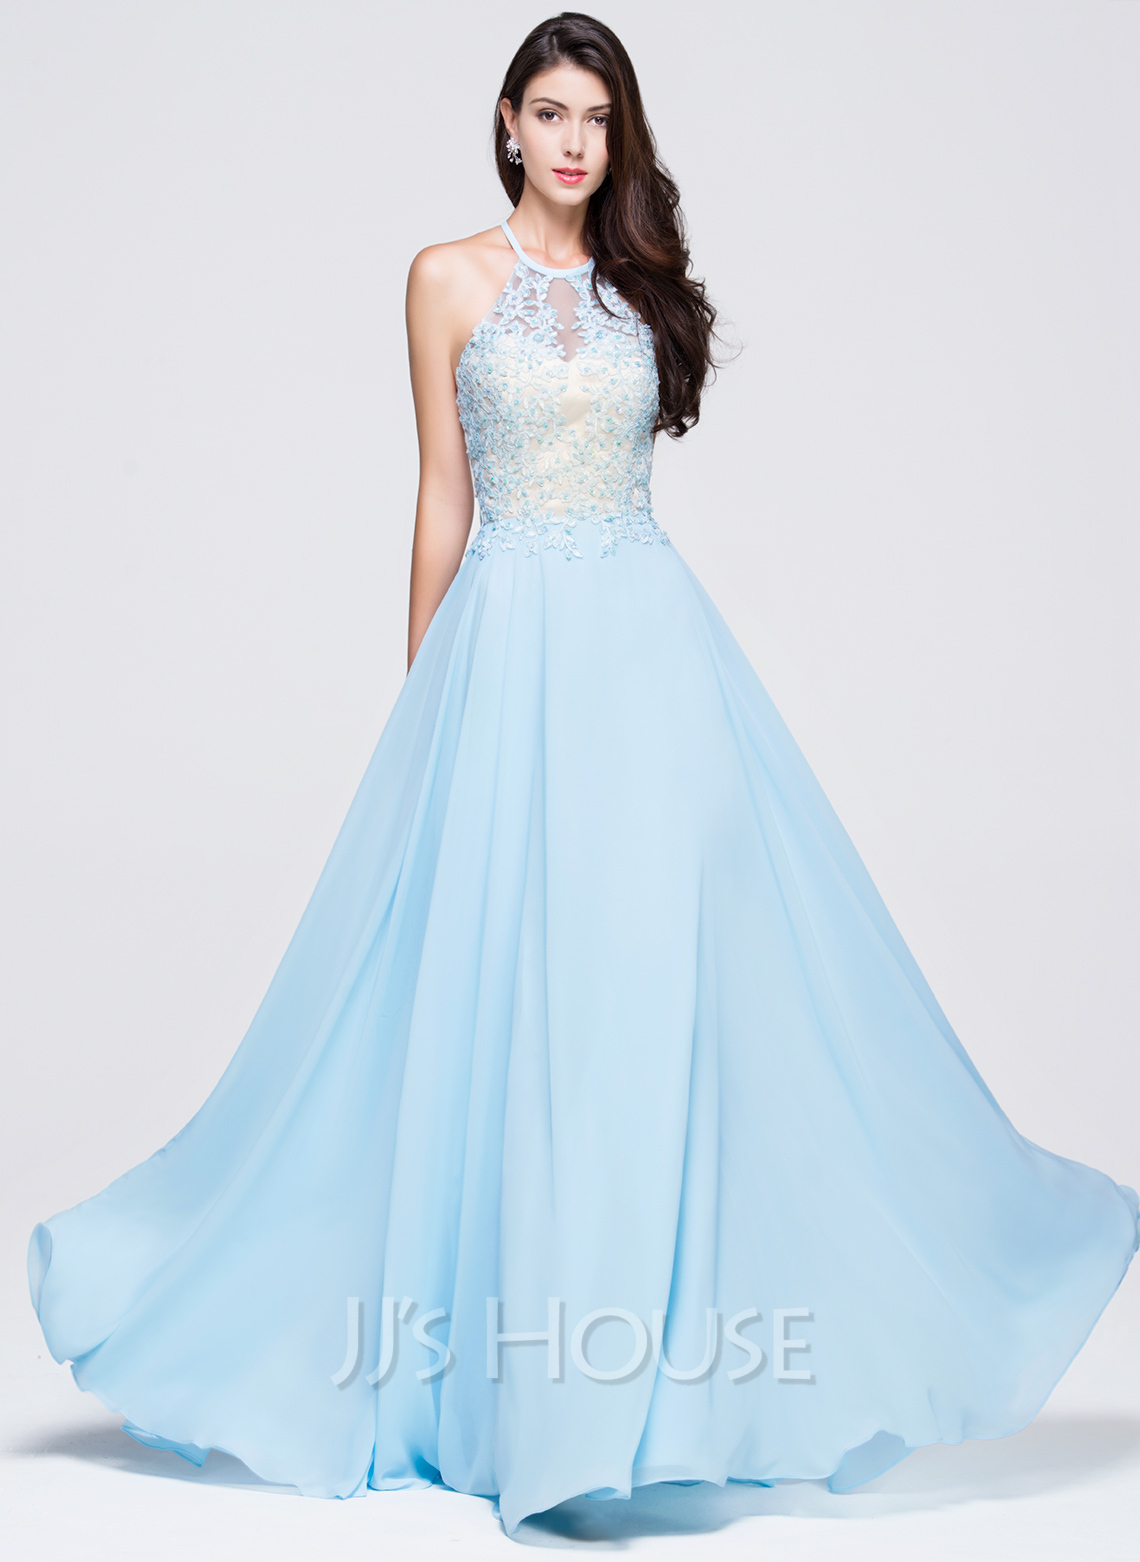 dc7b9980f9309 A-Line/Princess Scoop Neck Floor-Length Chiffon Prom Dresses With Beading  Appliques. Loading zoom